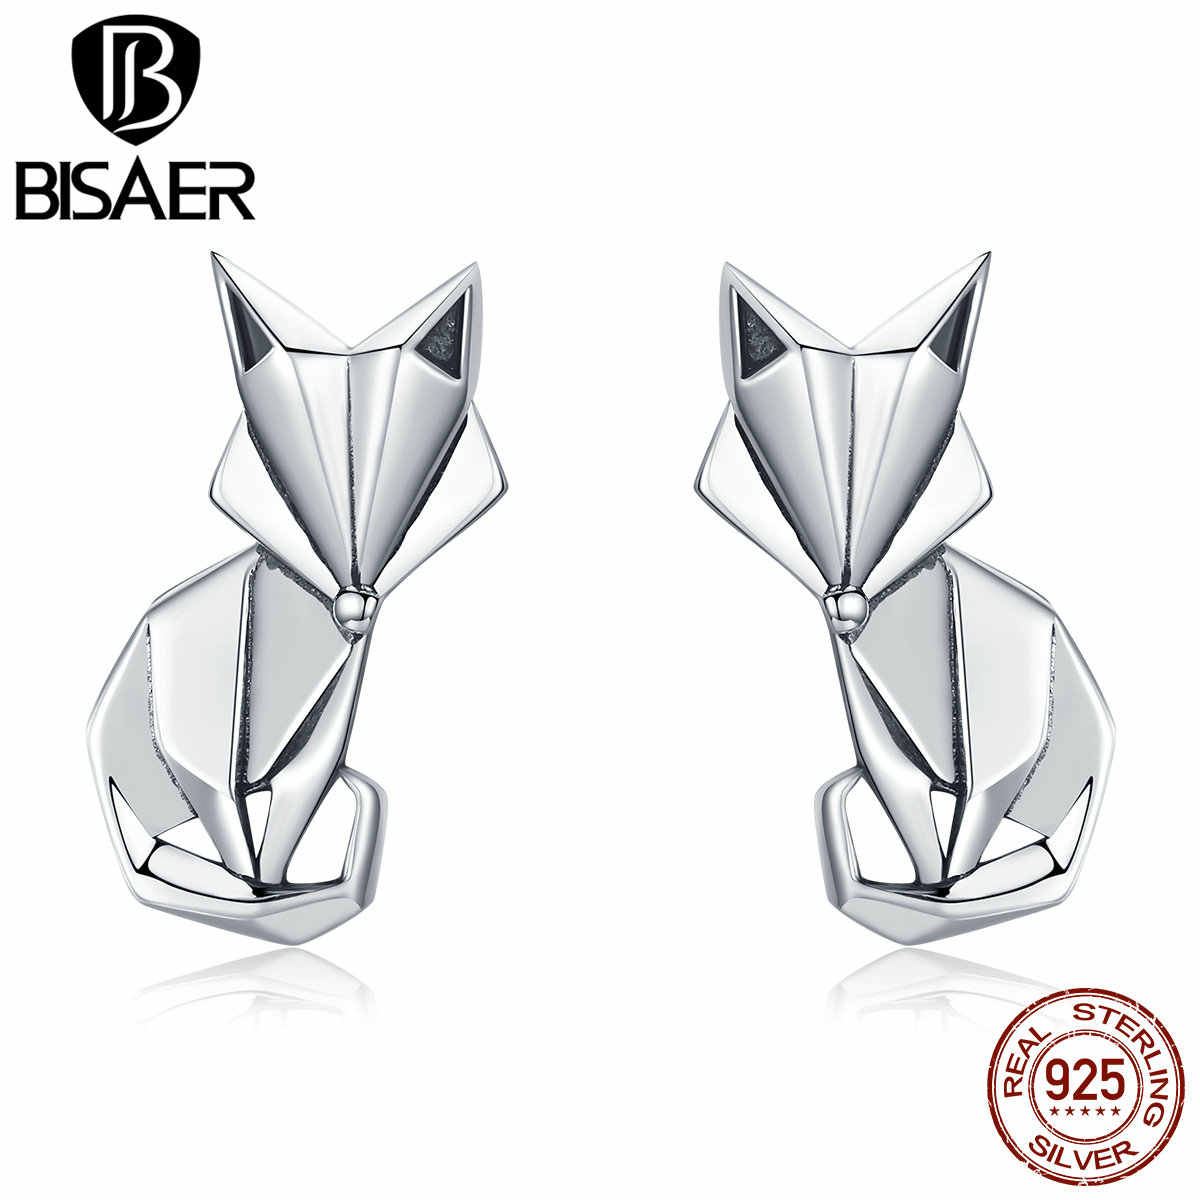 BISAER High Quality 925 Sterling Silver Folding Fox Silver White CZ Stud Earrings Jewelry Making Gifts for Lover&Mother  HSE526